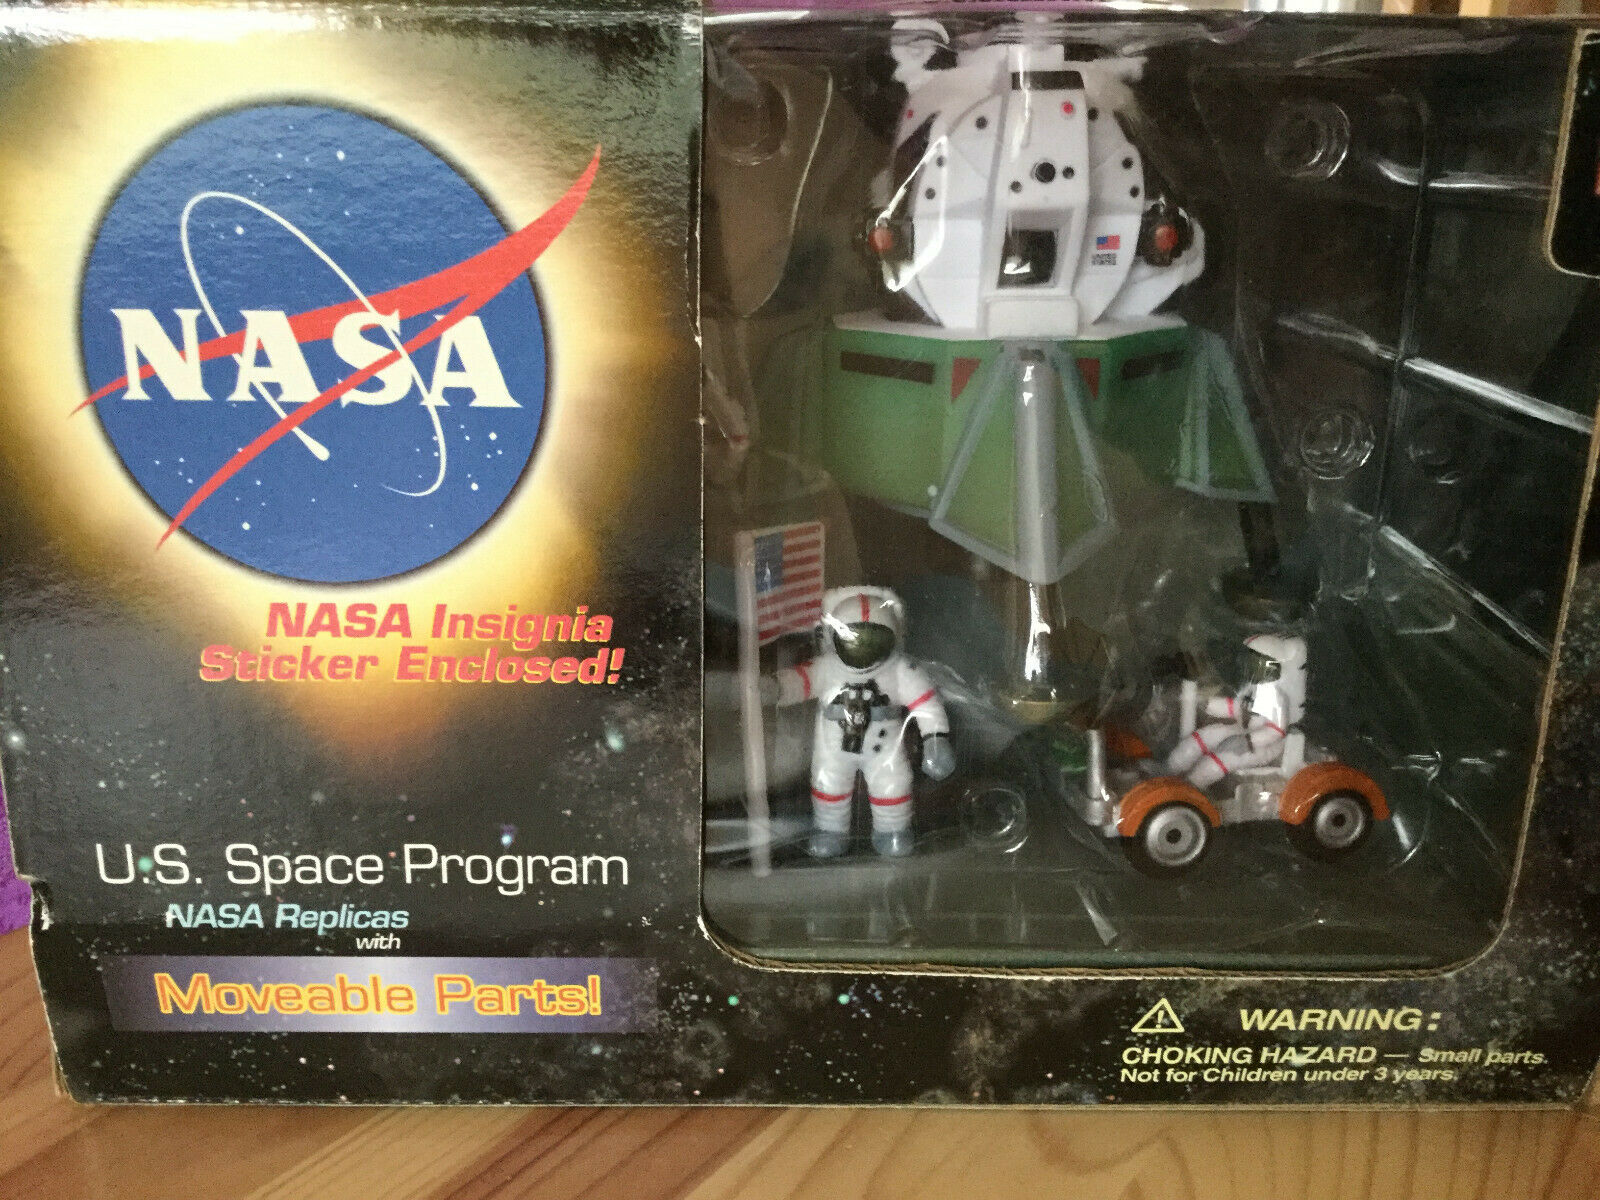 Play Visions NASA Replicas Lunar Modual with Austronauts & Land Rover